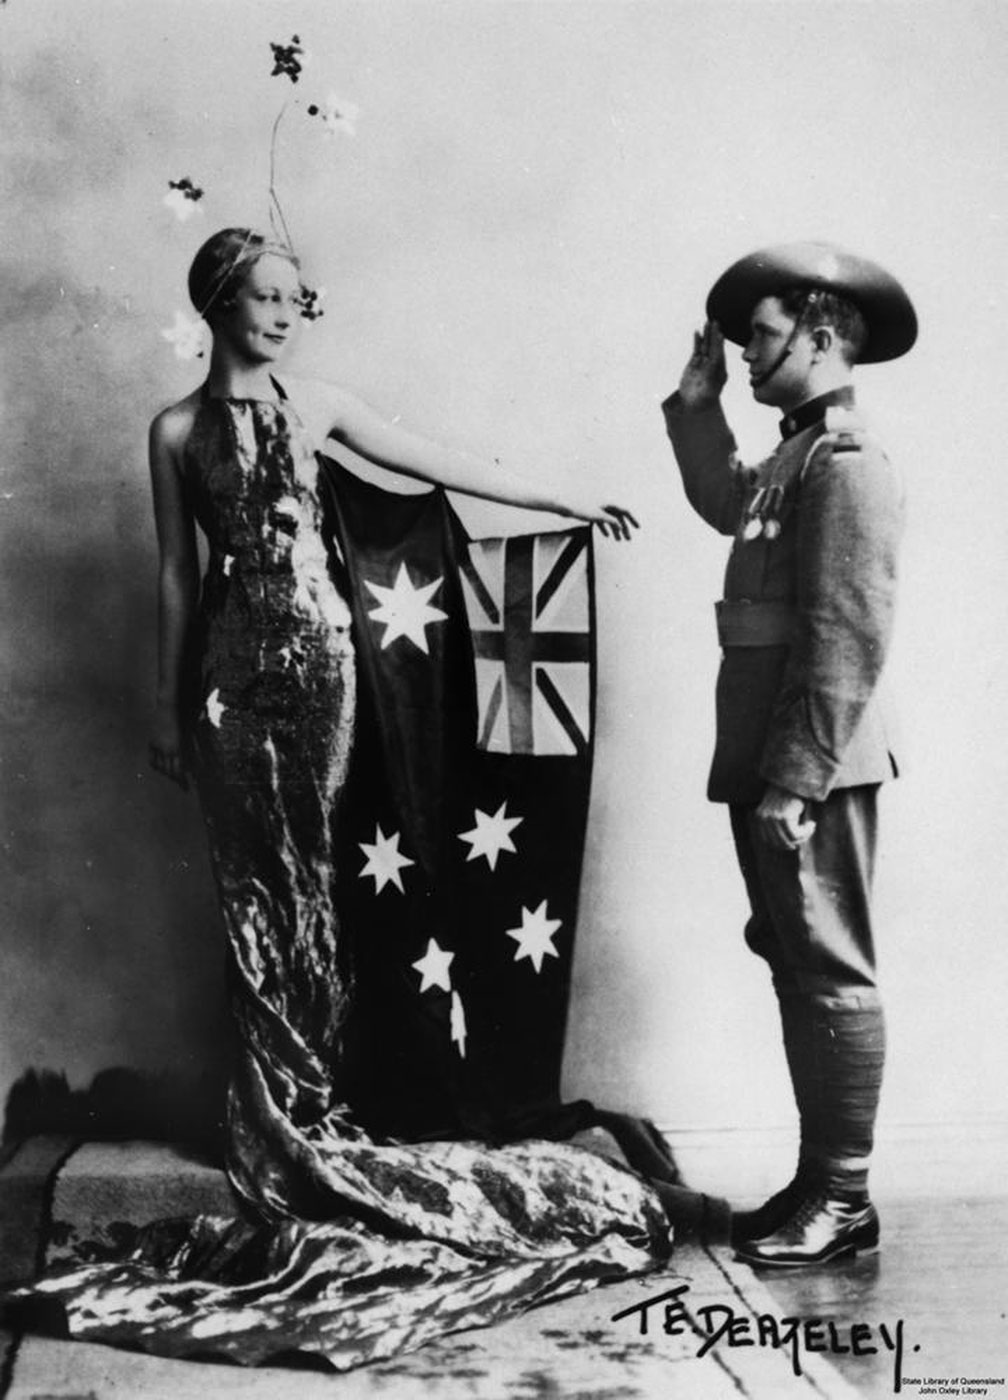 A woman dressed in a sleeveless fitted evening gown, which trails to the floor, wears a headdress of stars. An Australian flag is attached to her left arm, which is extended in the direction of a young man. He wears a soldier's uniform and has his right arm raised in a salute. - click to view larger image